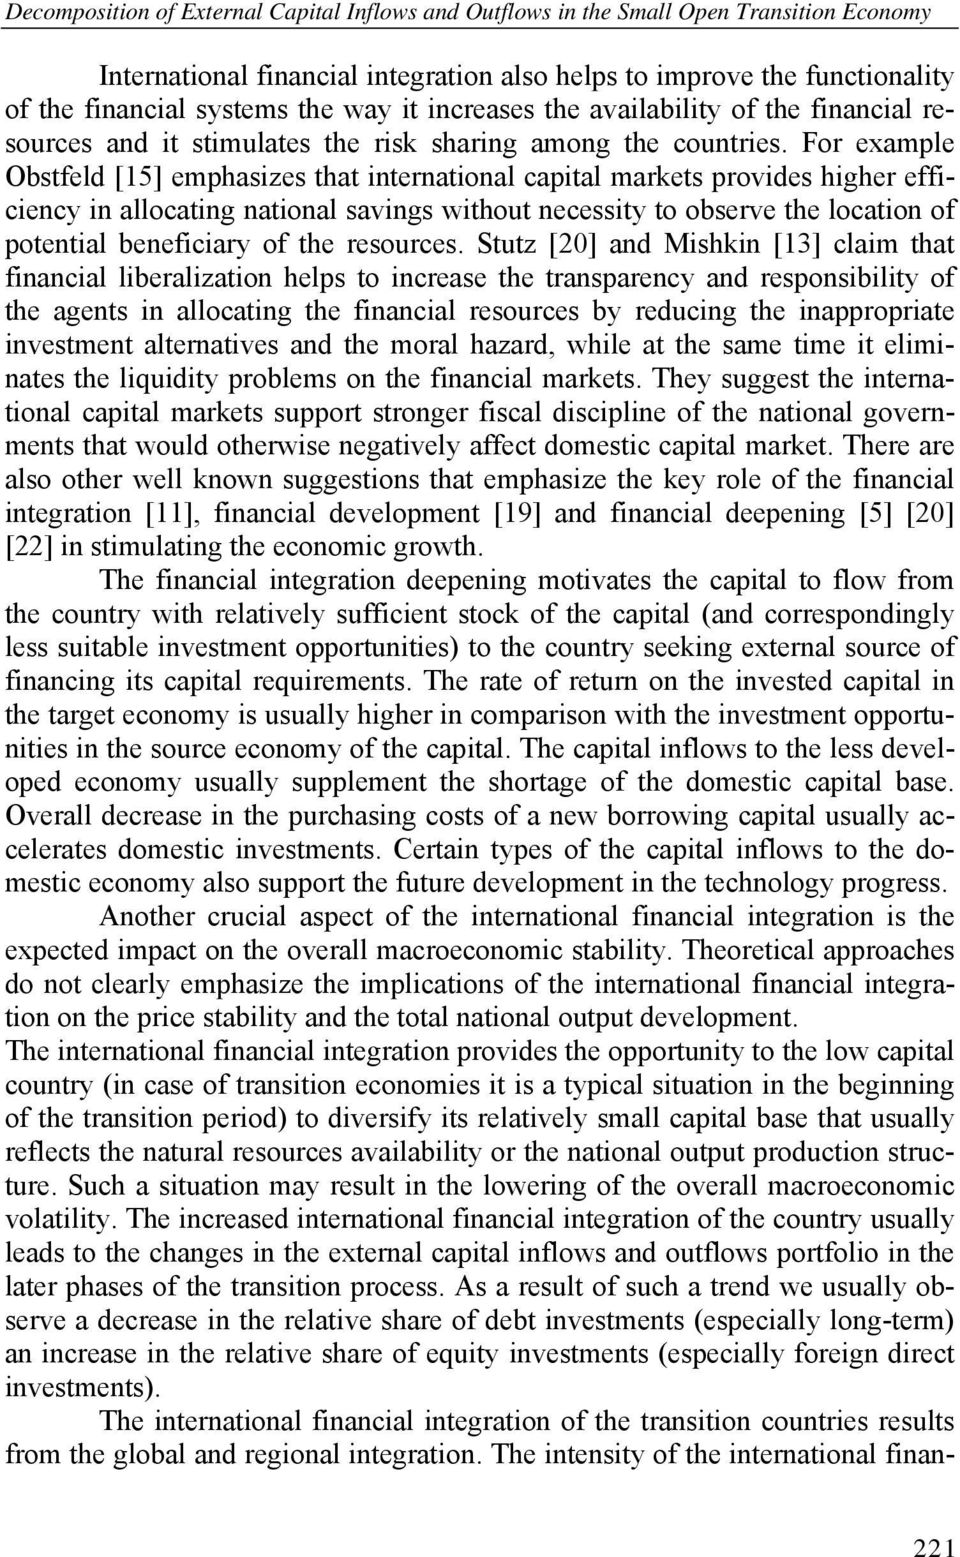 For example Obstfeld [15] emphasizes that international capital markets provides higher efficiency in allocating national savings without necessity to observe the location of potential beneficiary of